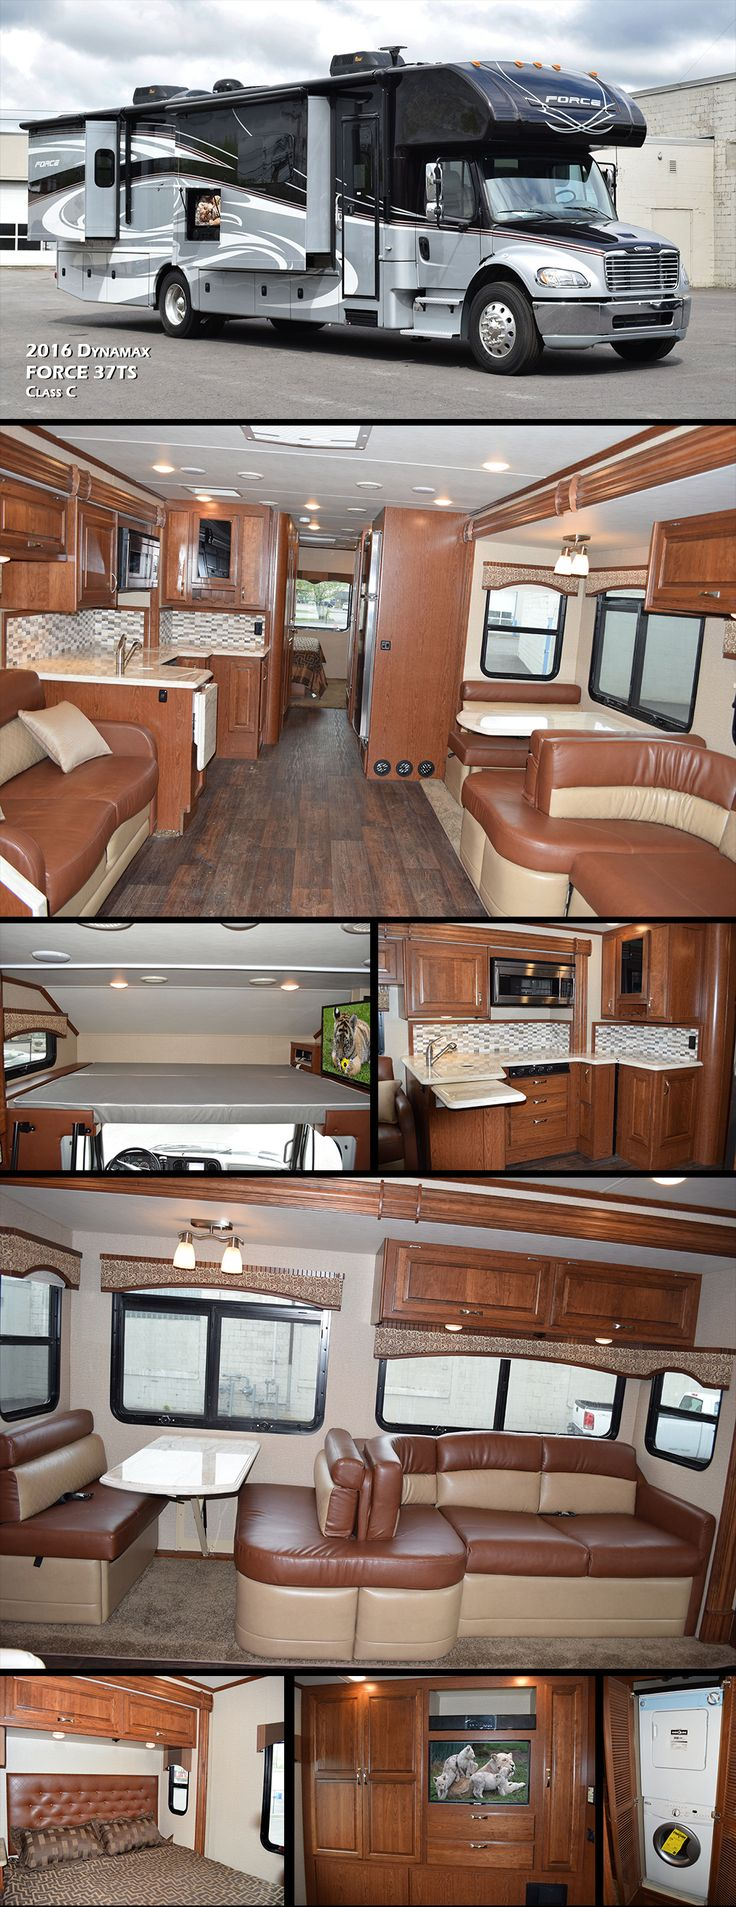 "The all new 2016 Dynamax Force 37TS Super C bunk model is approximately 39 feet with 3 slides. Standards include a king size bed, bunk over cab, bedroom TV, 39"" TV on an electric swivel bracket for the living area and much more."